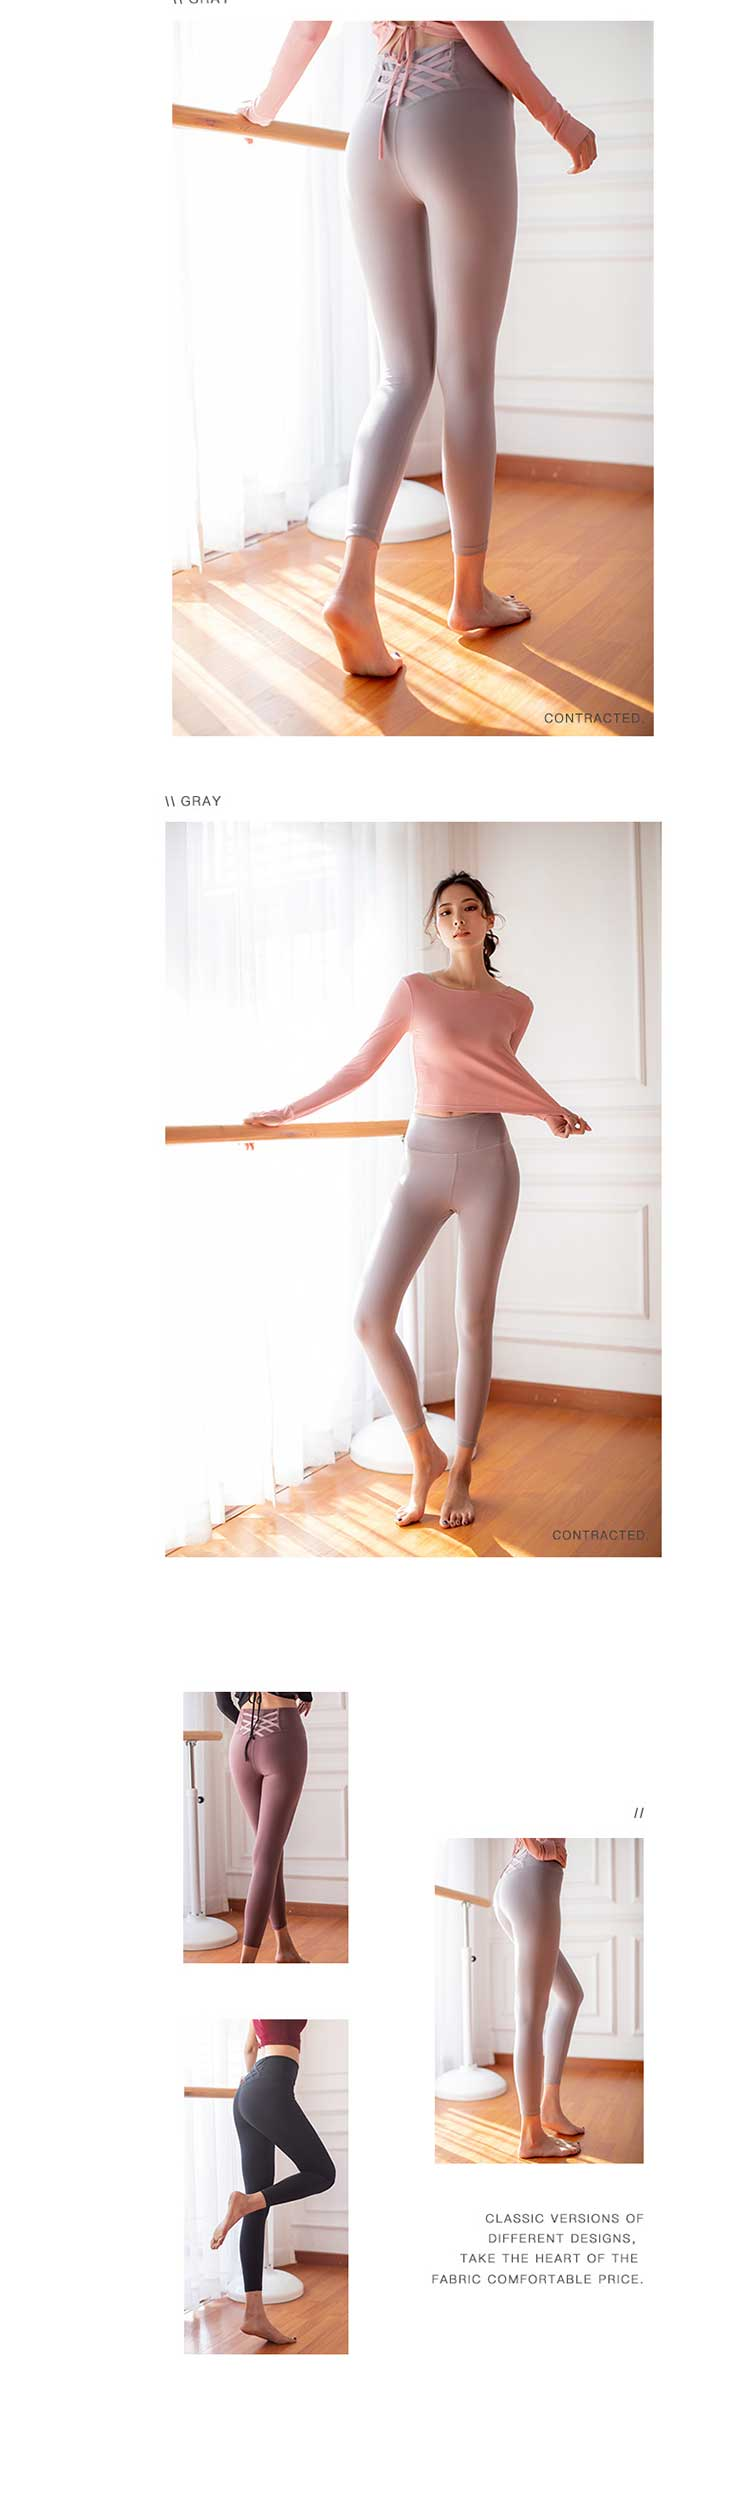 Widened-waist-close-the-abdomen-to-have-the-effect-of--keeping-warm,-comfortable-and-close-fitting